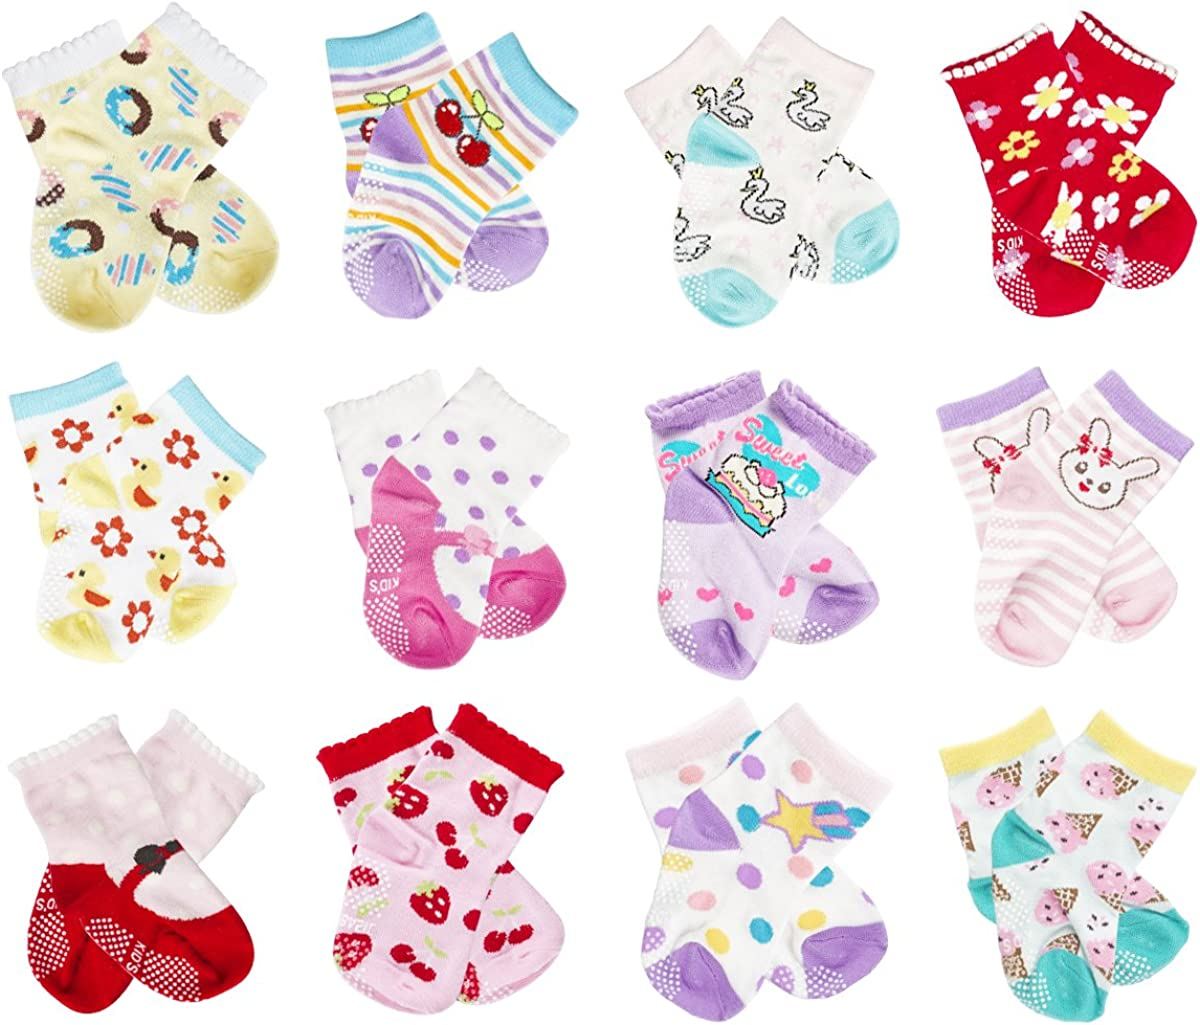 Unisex Baby Socks, Baby Girl Socks, Baby Boy socks, CIEHER 12 Pairs Non-Skid Cotton Socks with Grip Baby Socks, 12 Colors (Style 2)